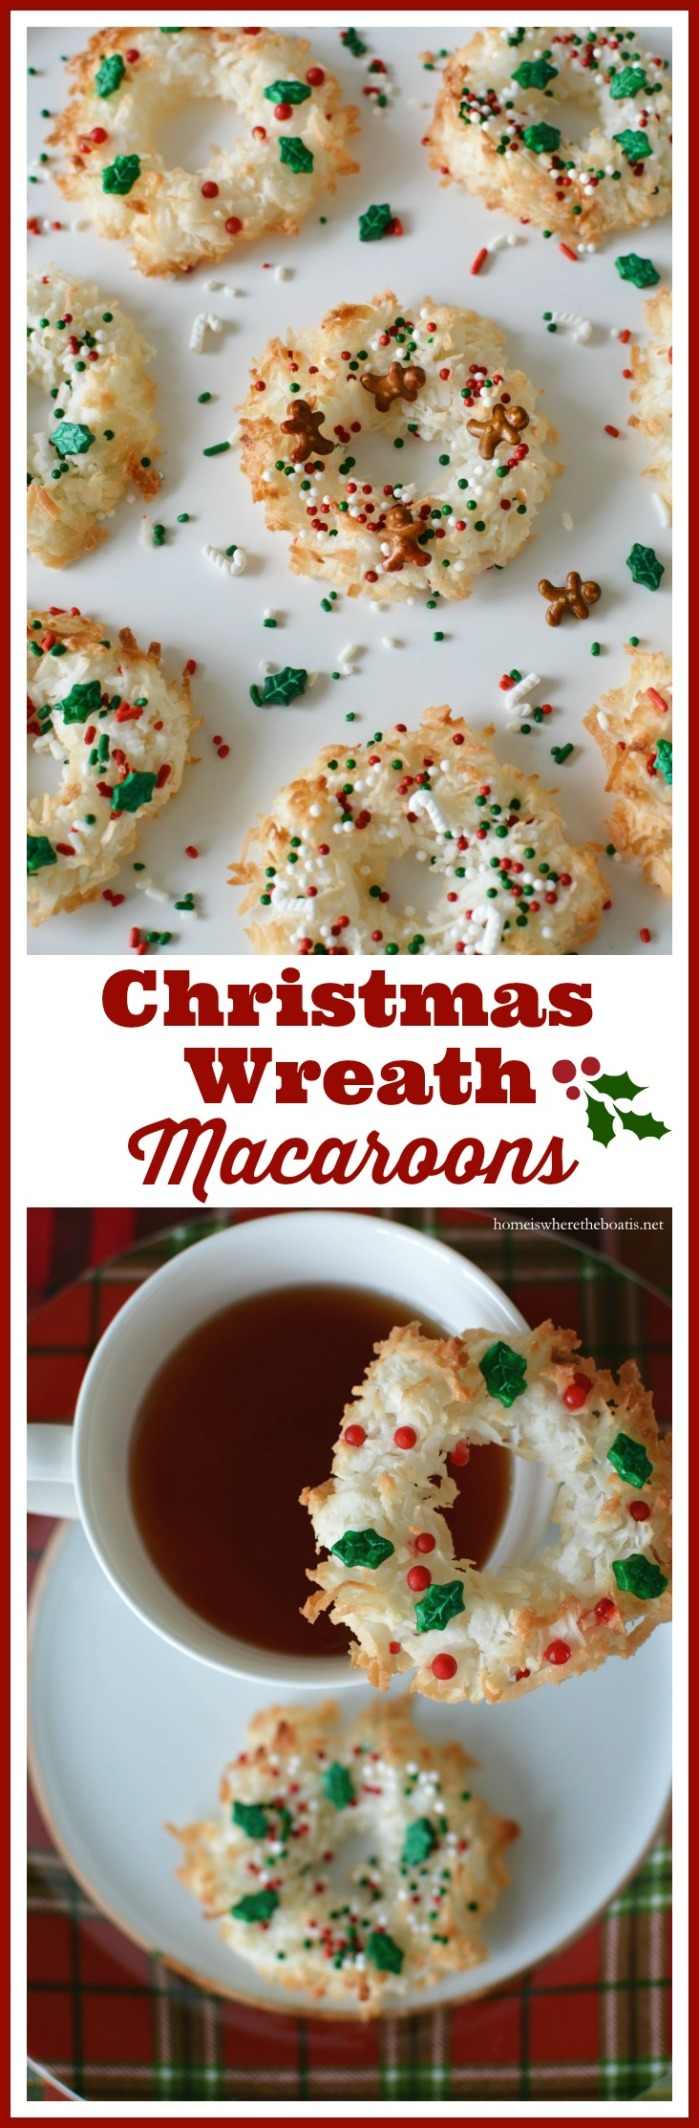 Christmas Wreath Macaroons! Only 4 ingredients and as fun to make as they are to eat! | homeiswheretheboatis.net #glutenfree #cookies #christmas